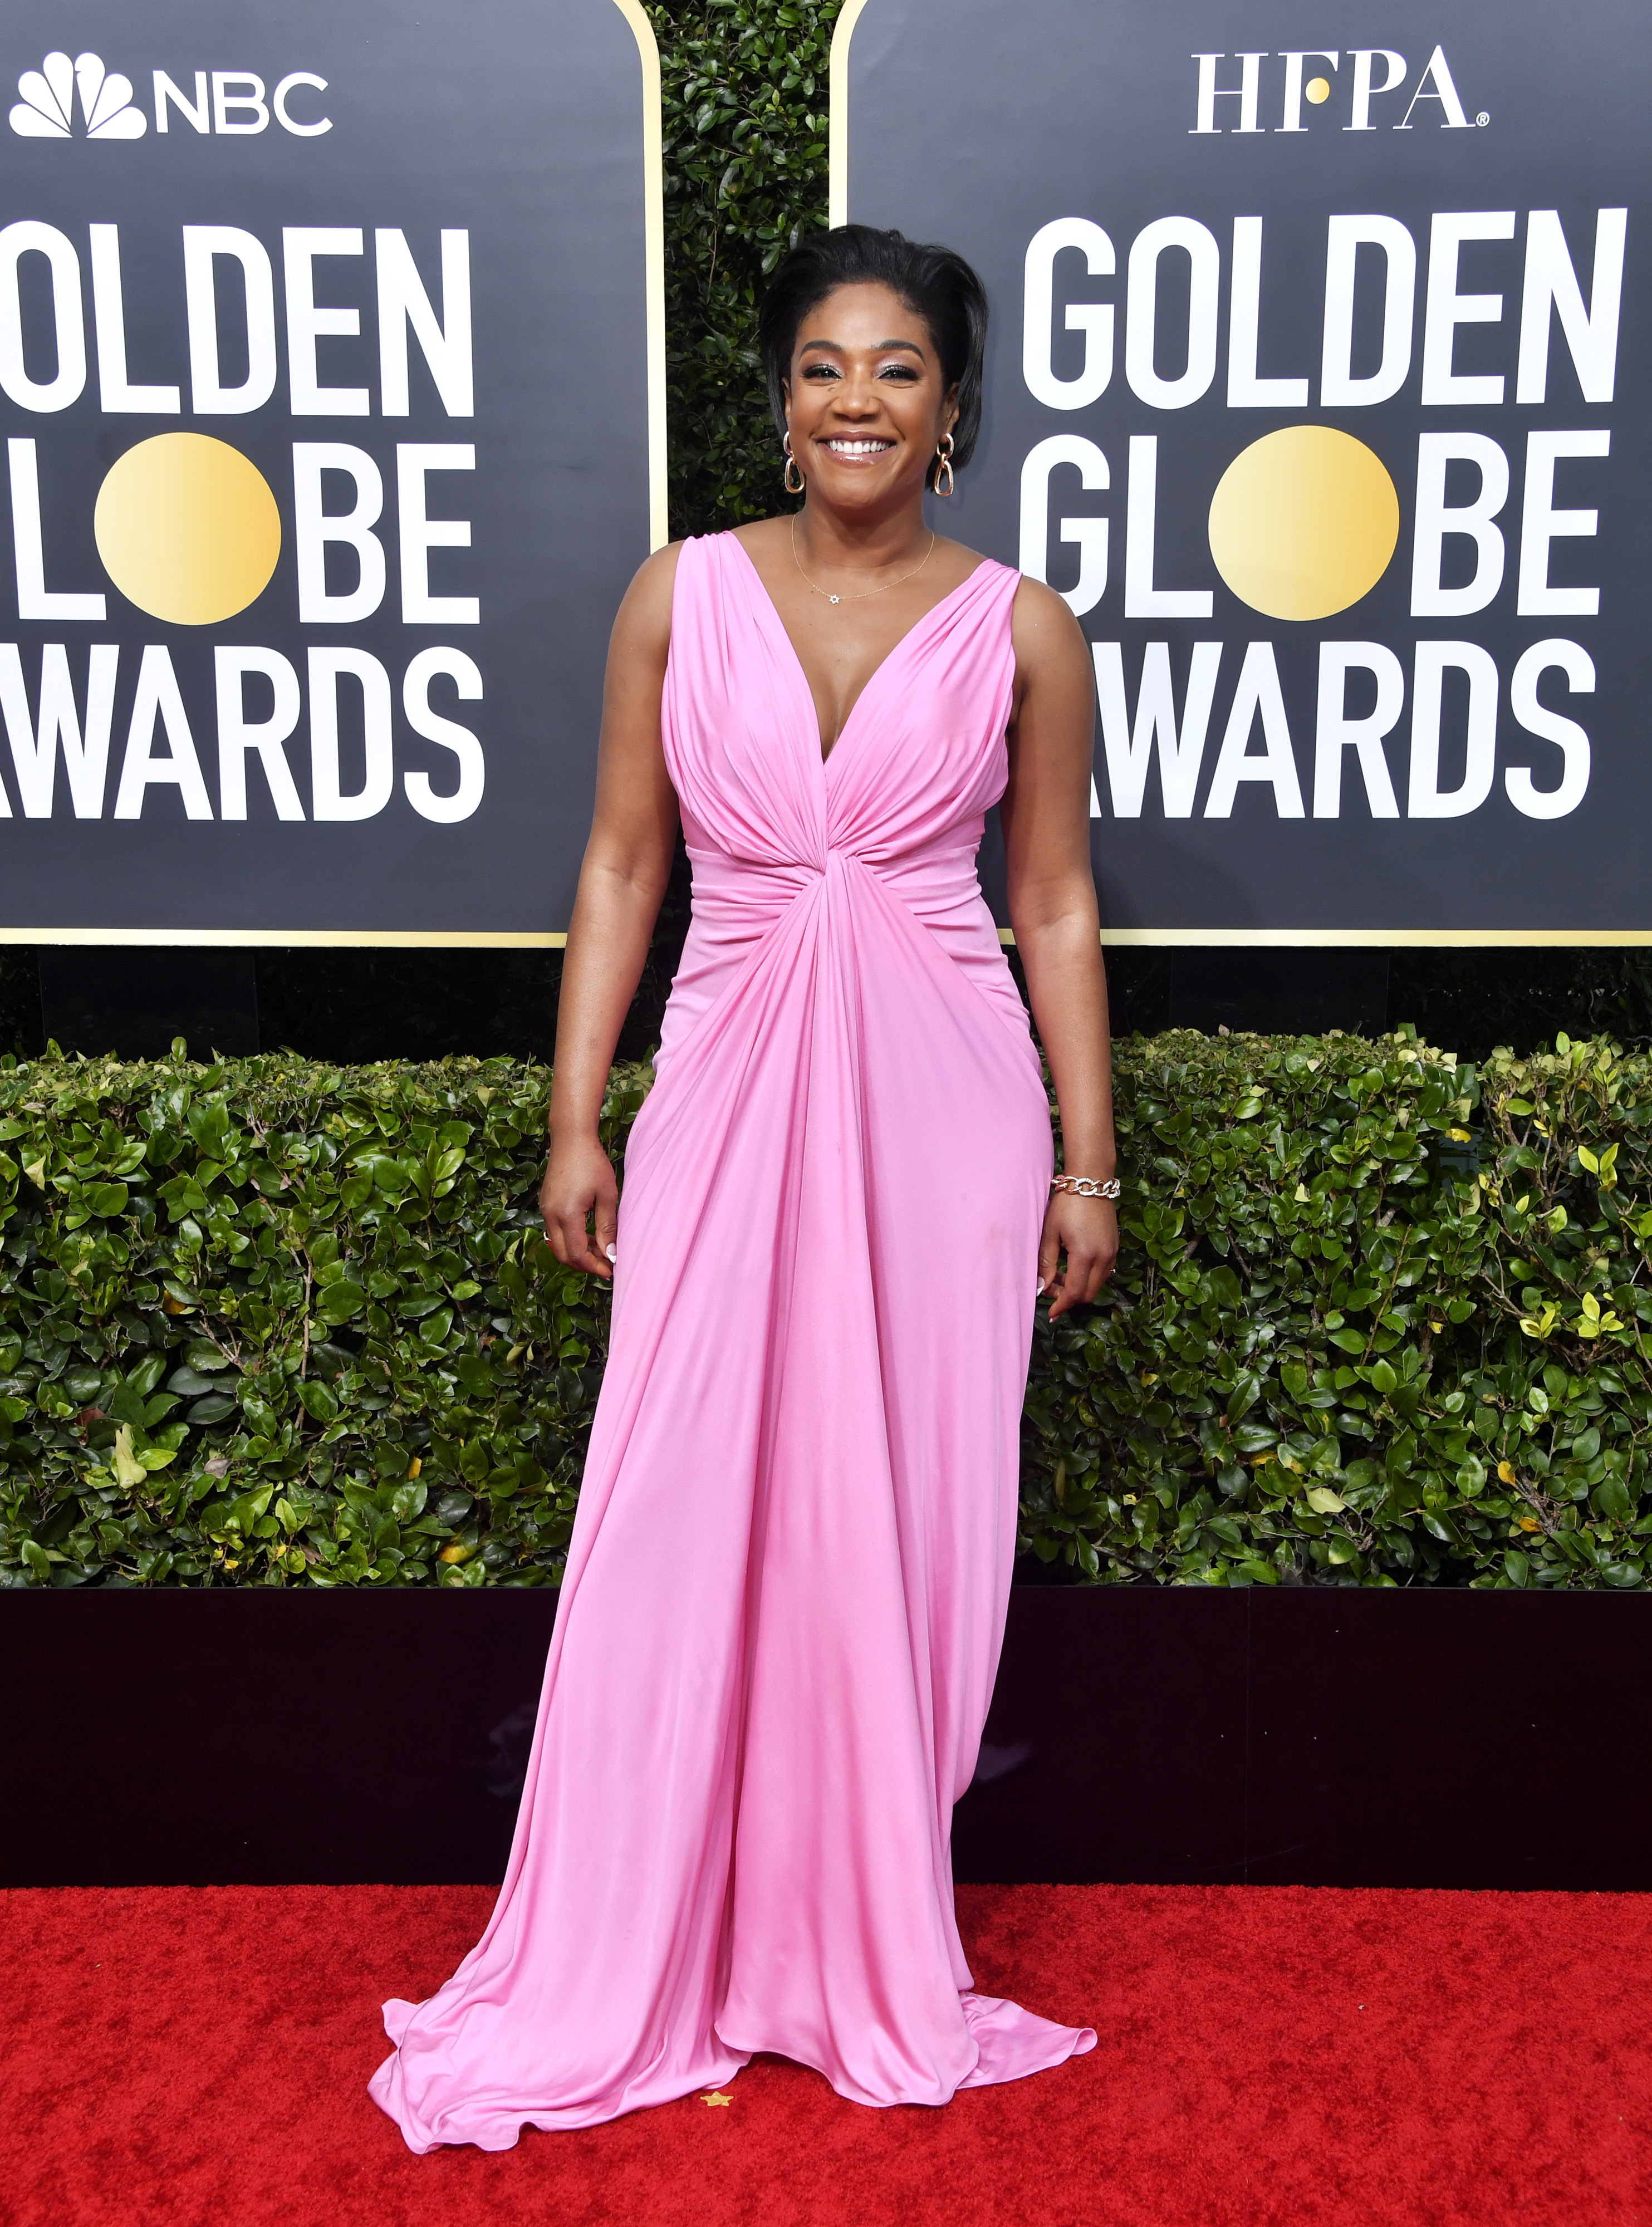 BEVERLY HILLS, CALIFORNIA - JANUARY 05: Tiffany Haddish attends the 77th Annual Golden Globe Awards at The Beverly Hilton Hotel on January 05, 2020 in Beverly Hills, California. (Photo by Frazer Harrison/Getty Images)